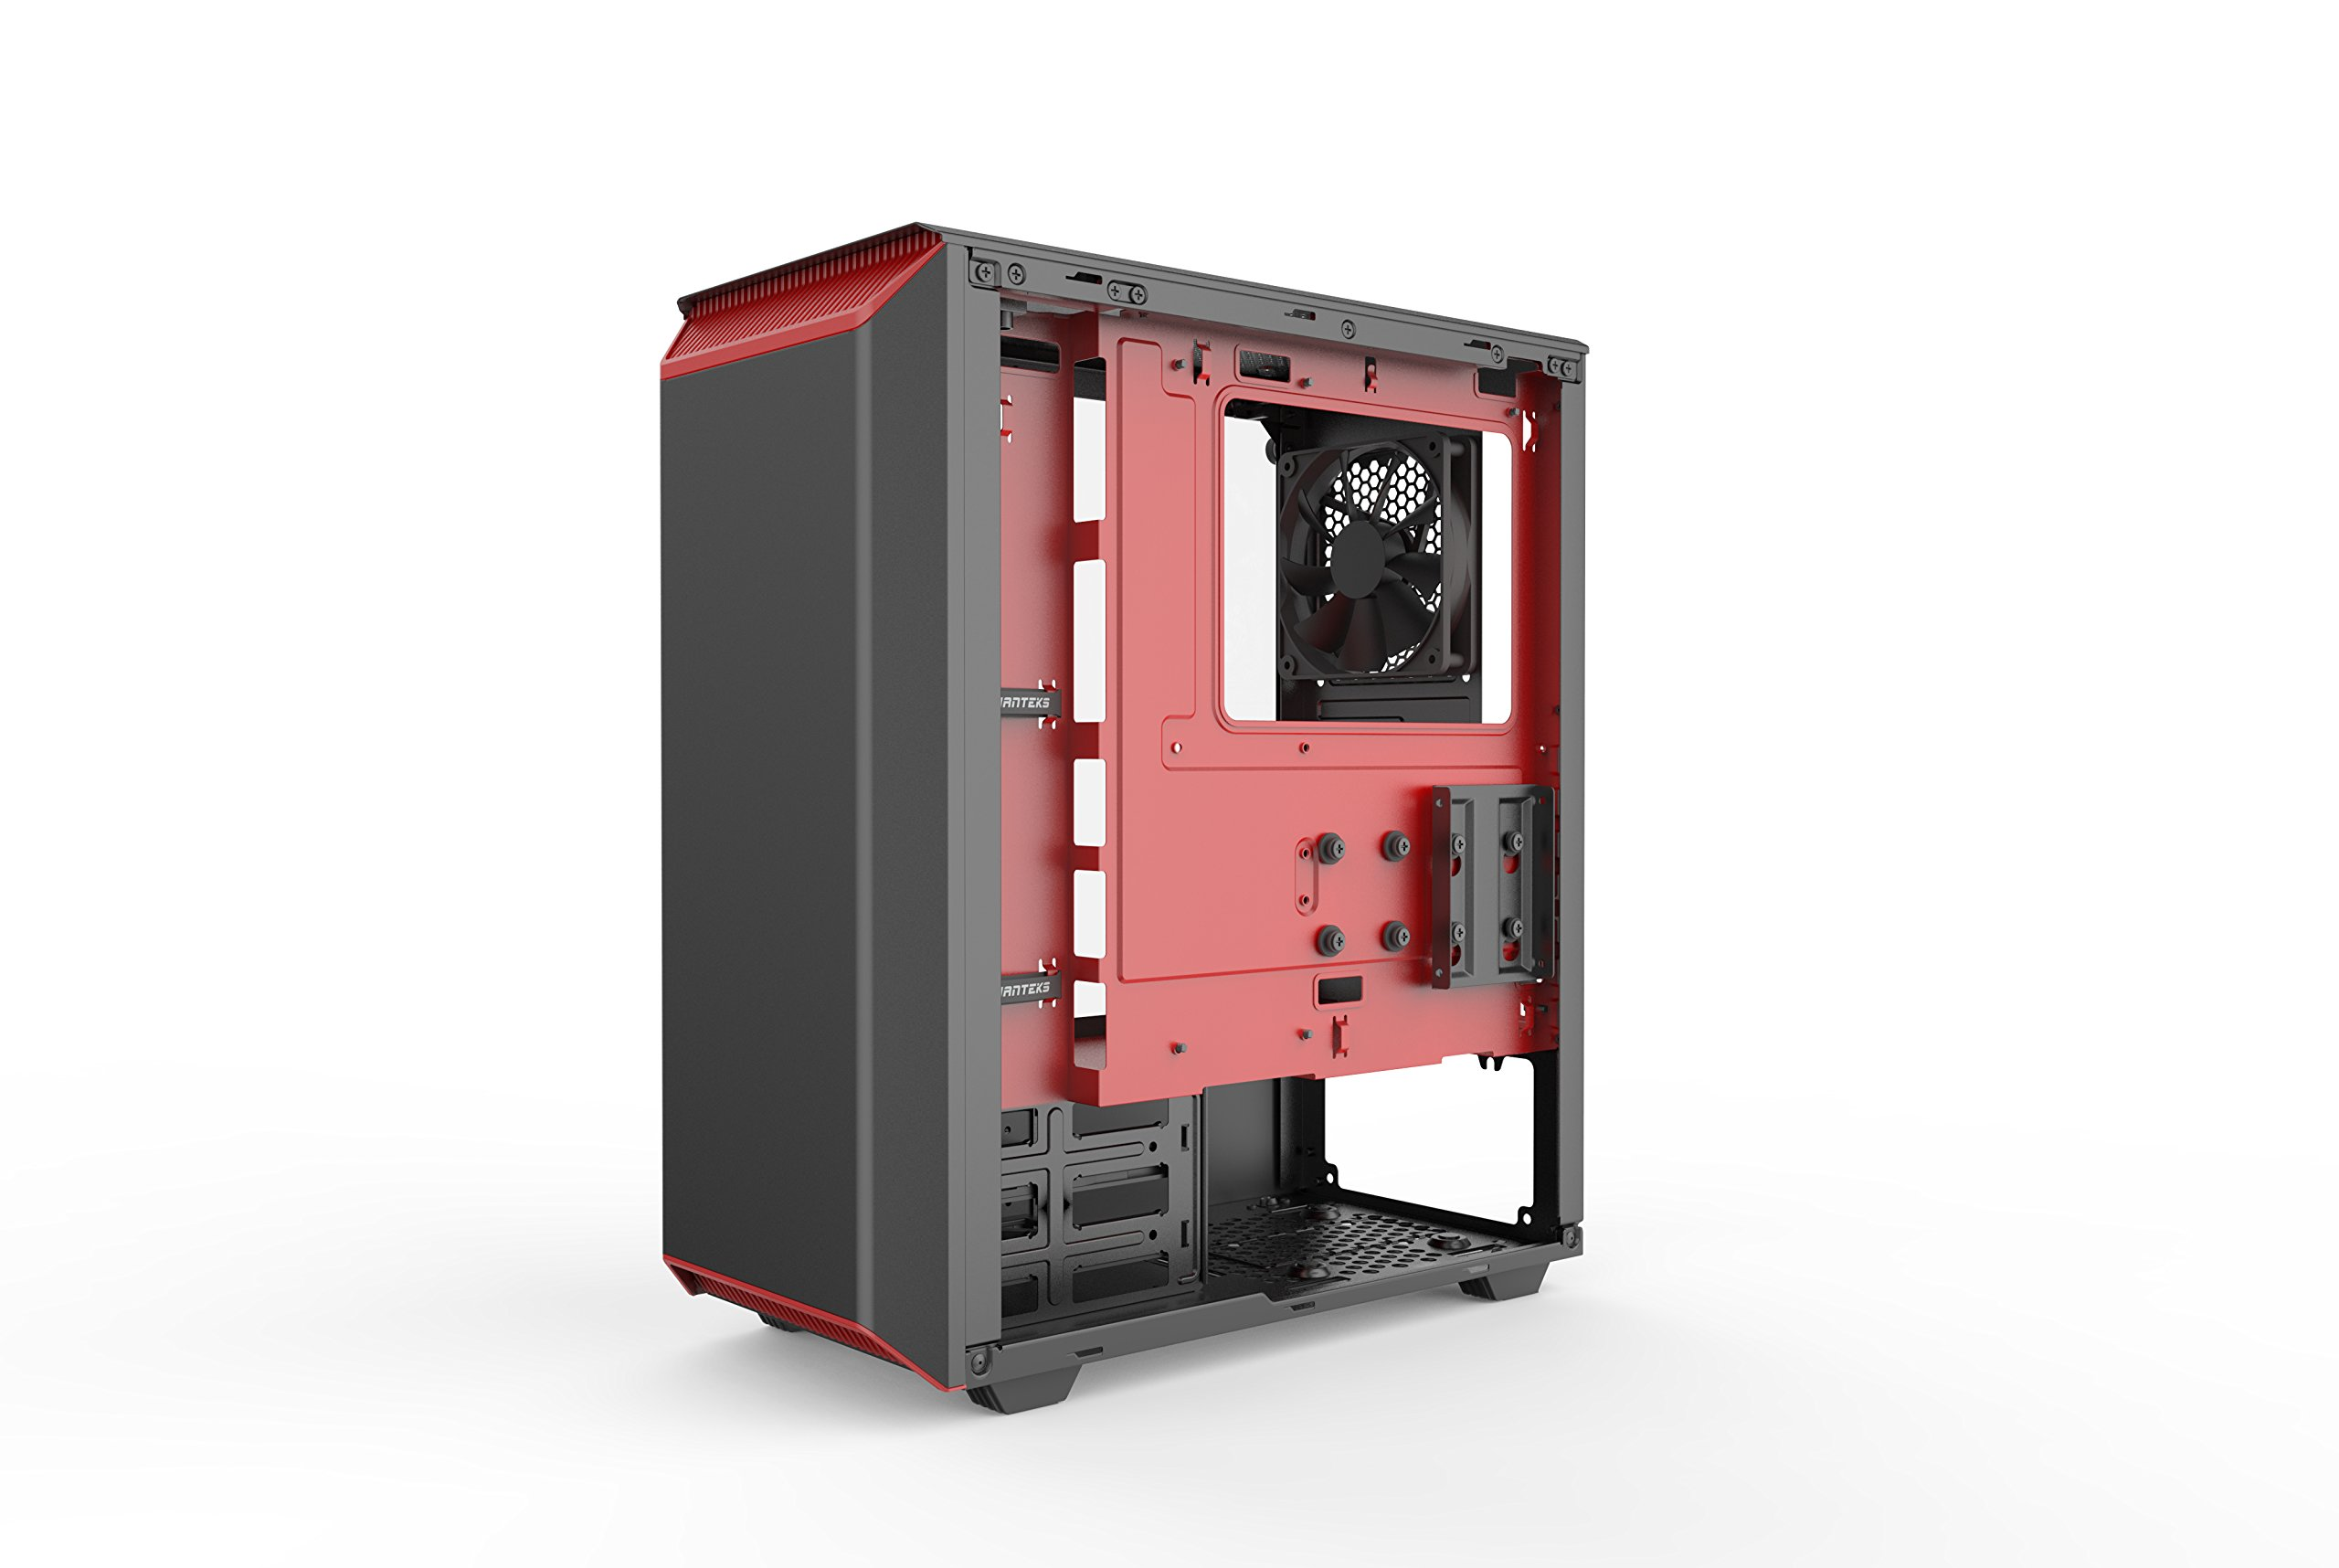 Phanteks PH-EC300PTG_BR Eclipse P300 Tempered Glass Steel ATX Mid Tower Case Black/Red by Phanteks (Image #8)